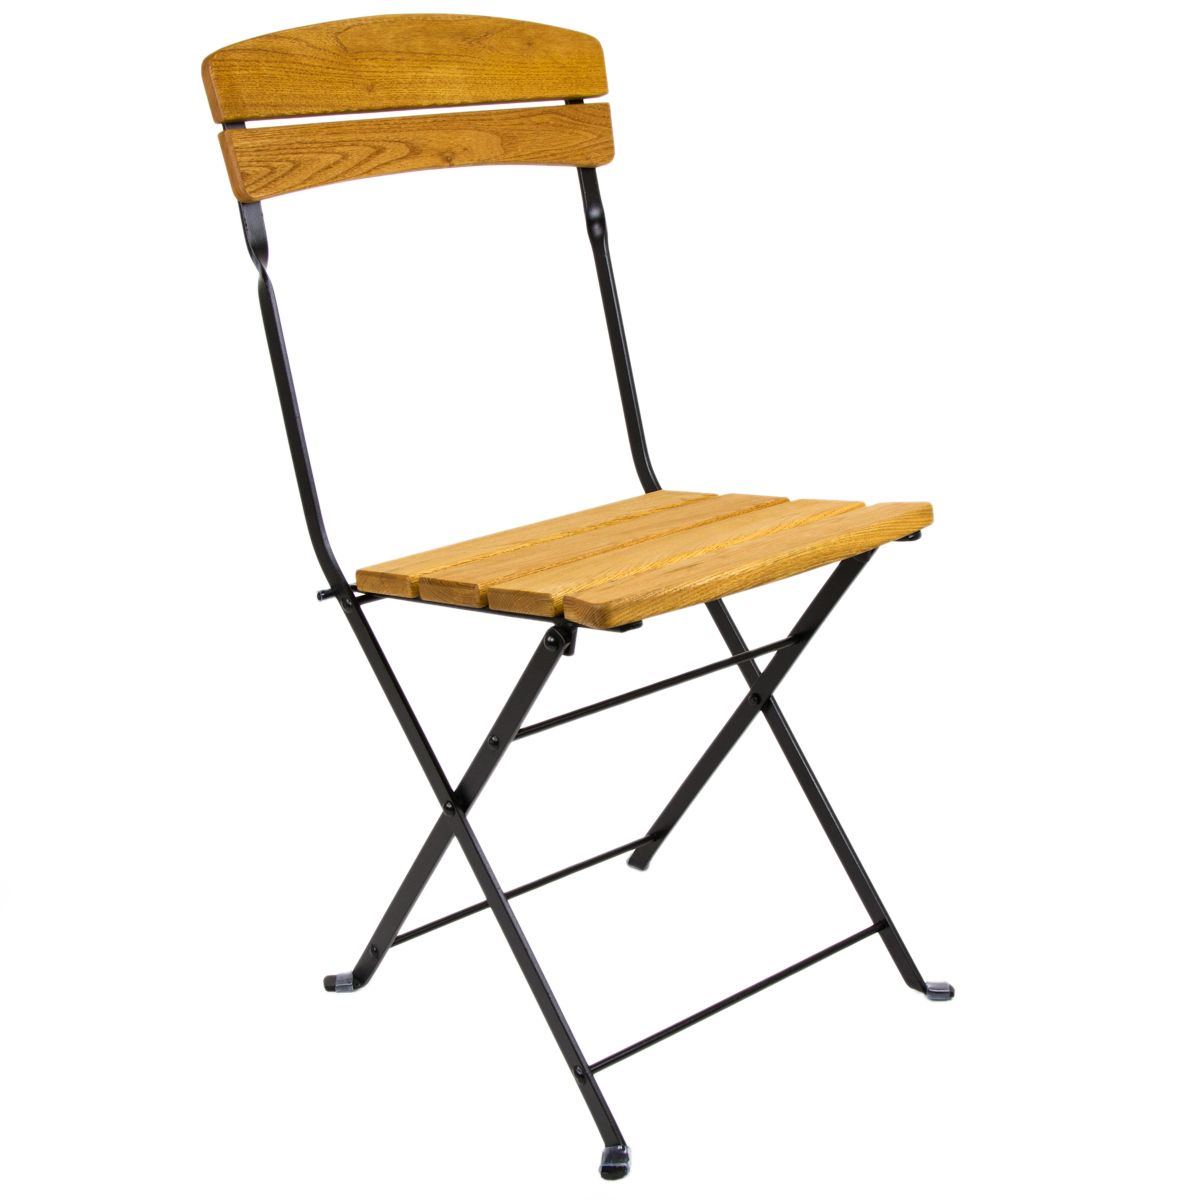 Haste como folding chair fsc certified chairs furniture